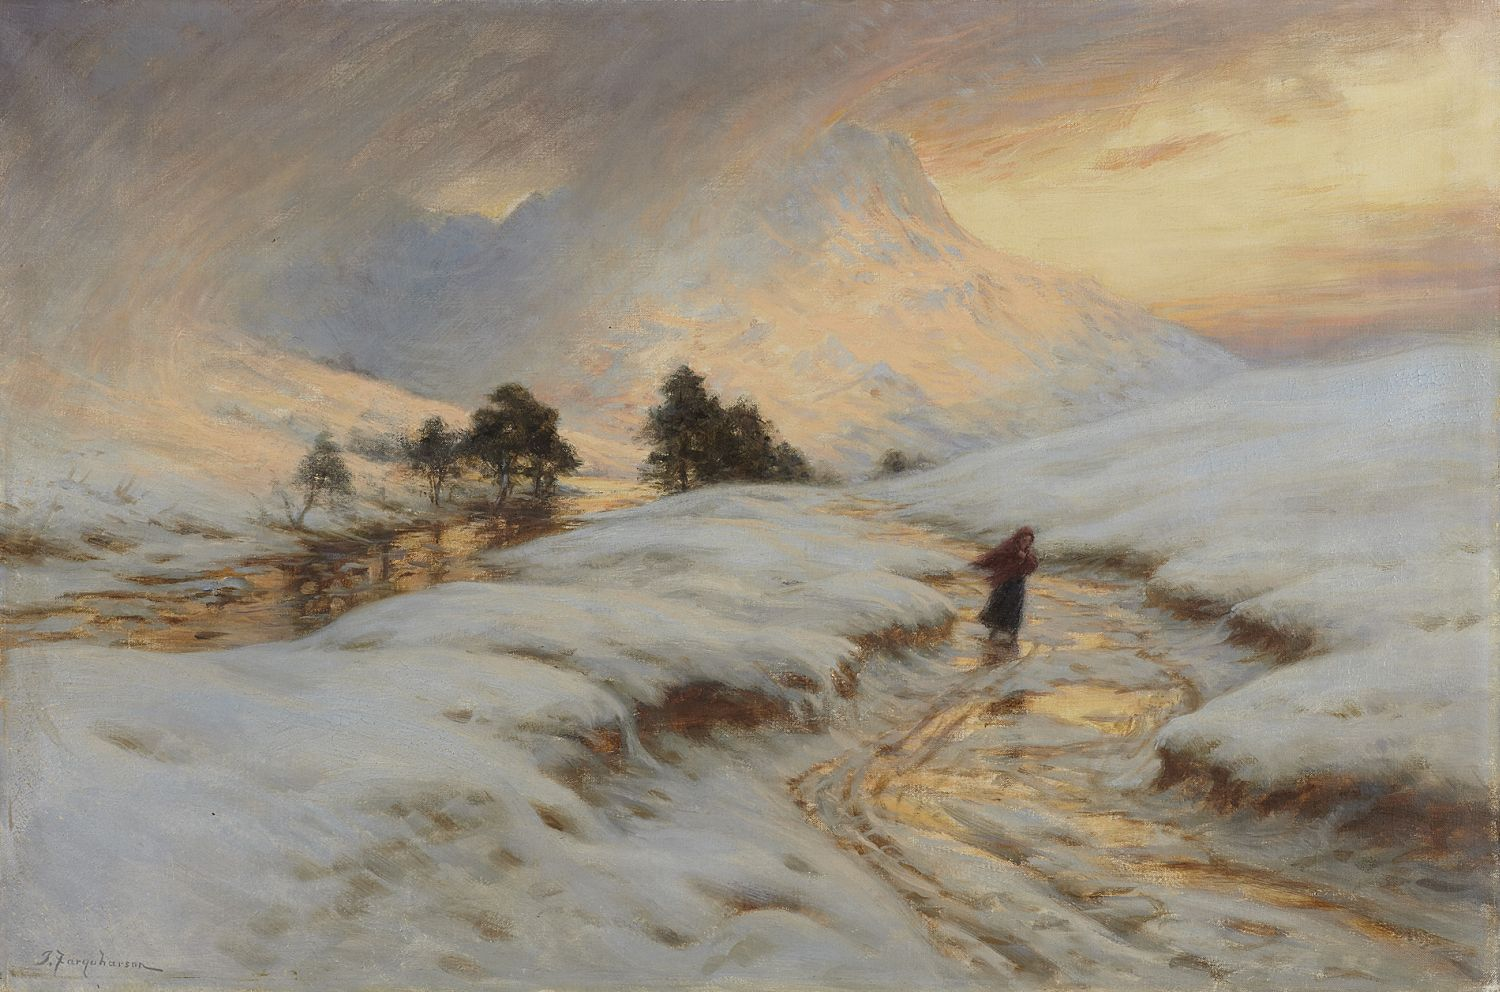 Joseph farquharson r a scottish 1846 1935 homeward bound for Oil paintings for sale amazon